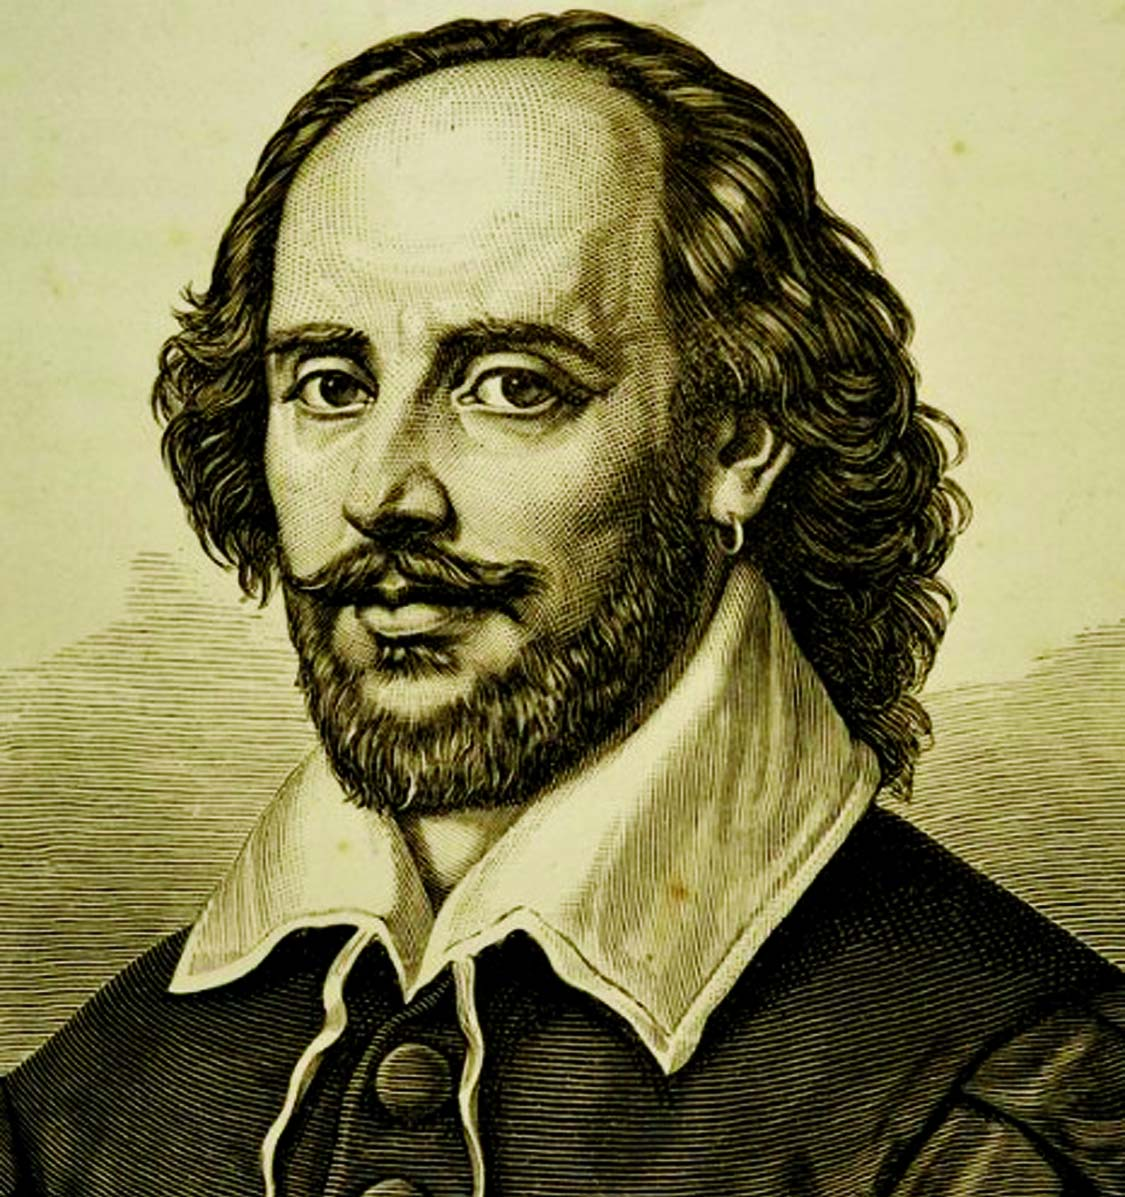 Greatest dramatist William Shakespeare